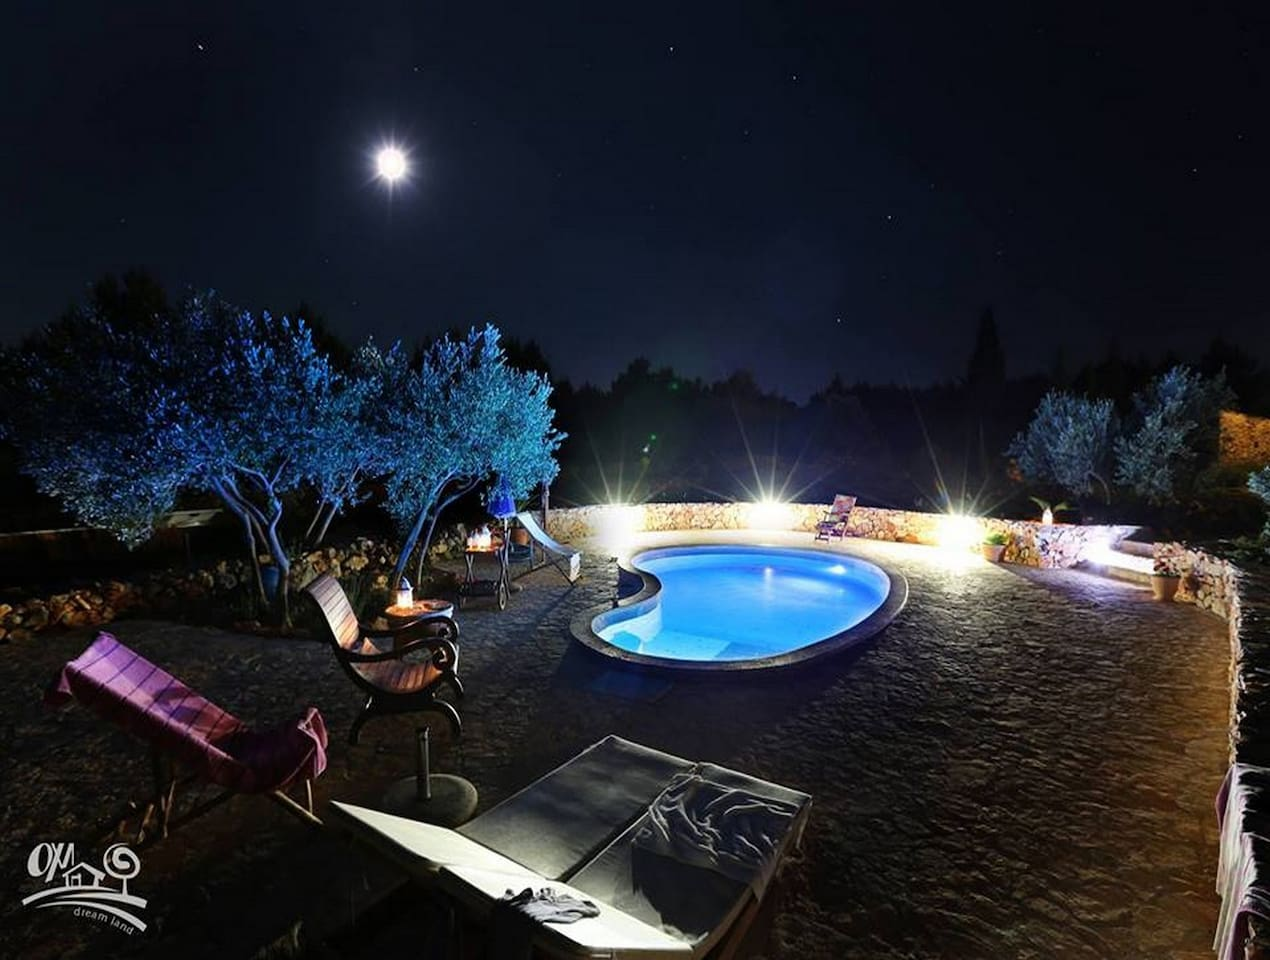 Villa Oxa Dreamland pool at night